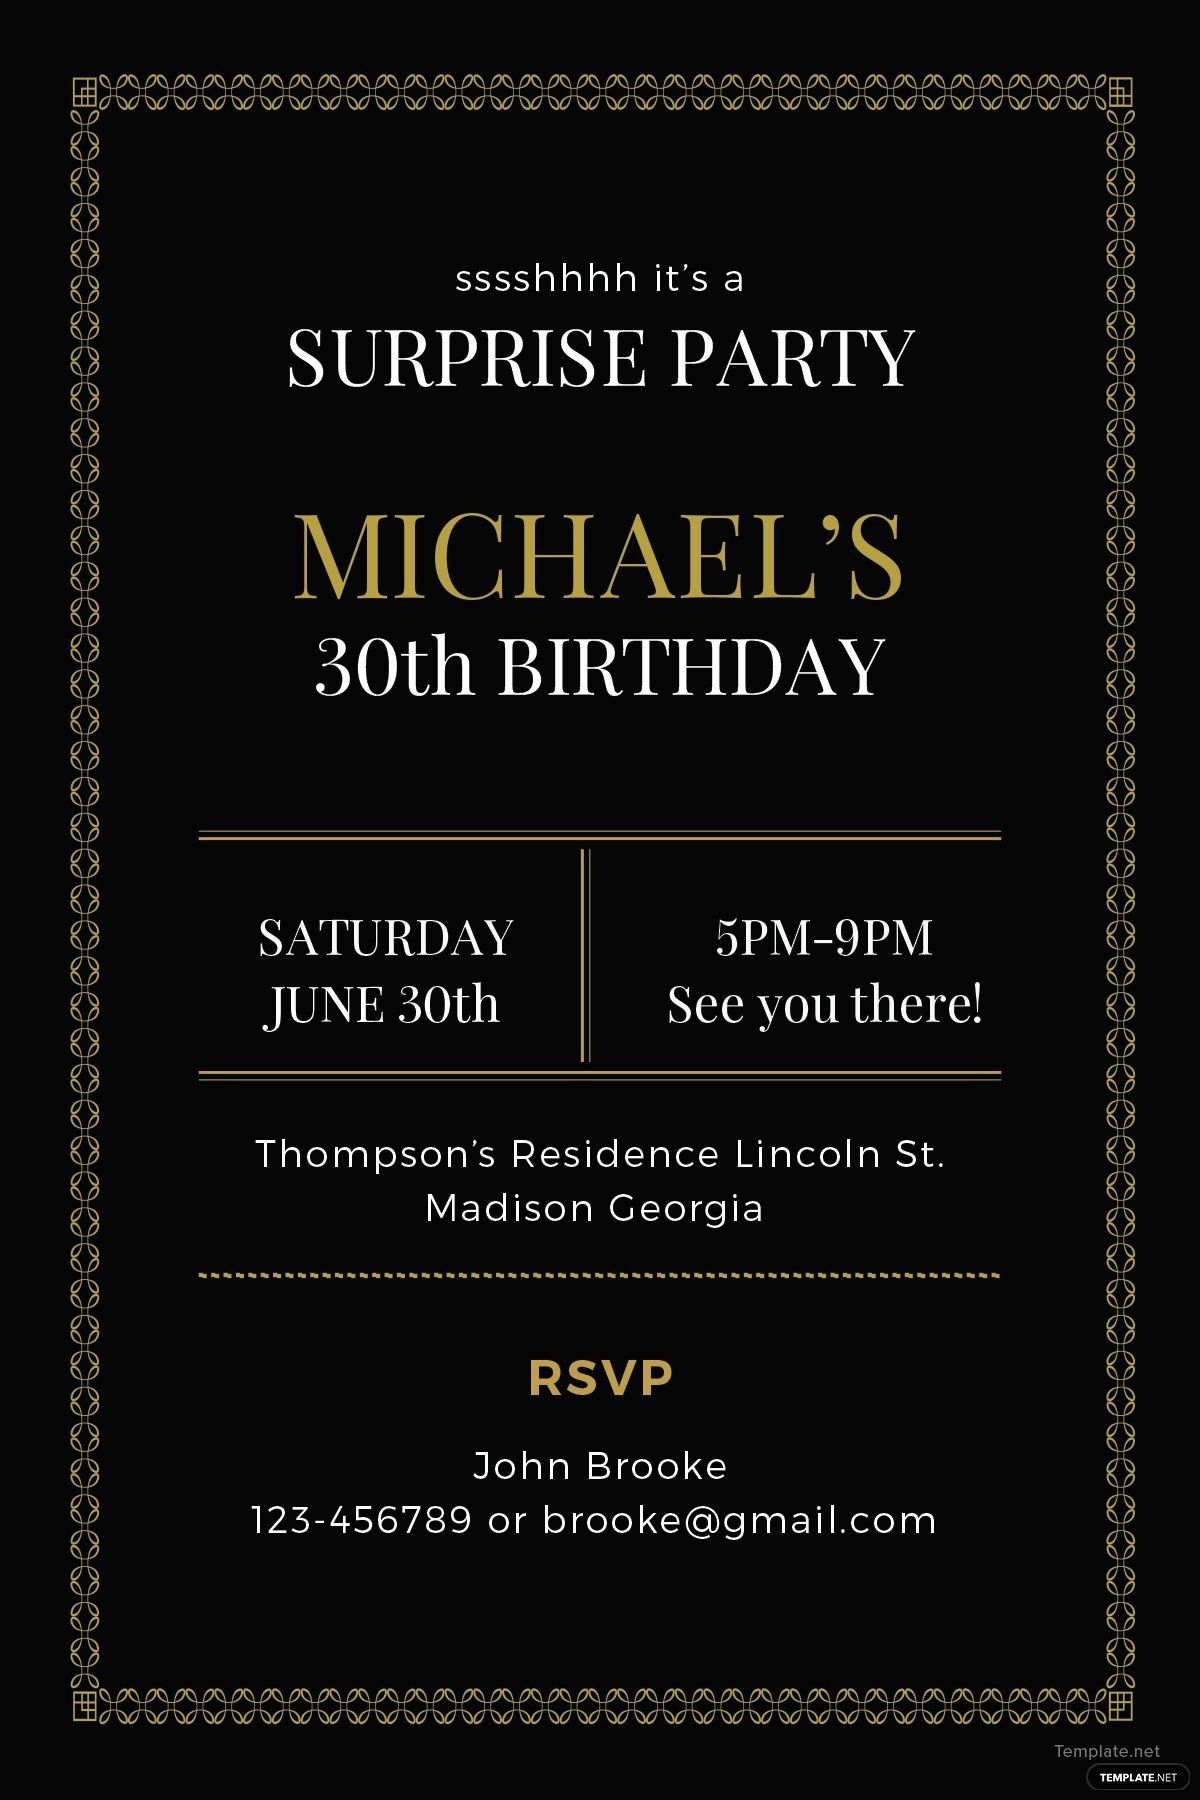 Surprise Party Invitation Template New Free Surprise Party